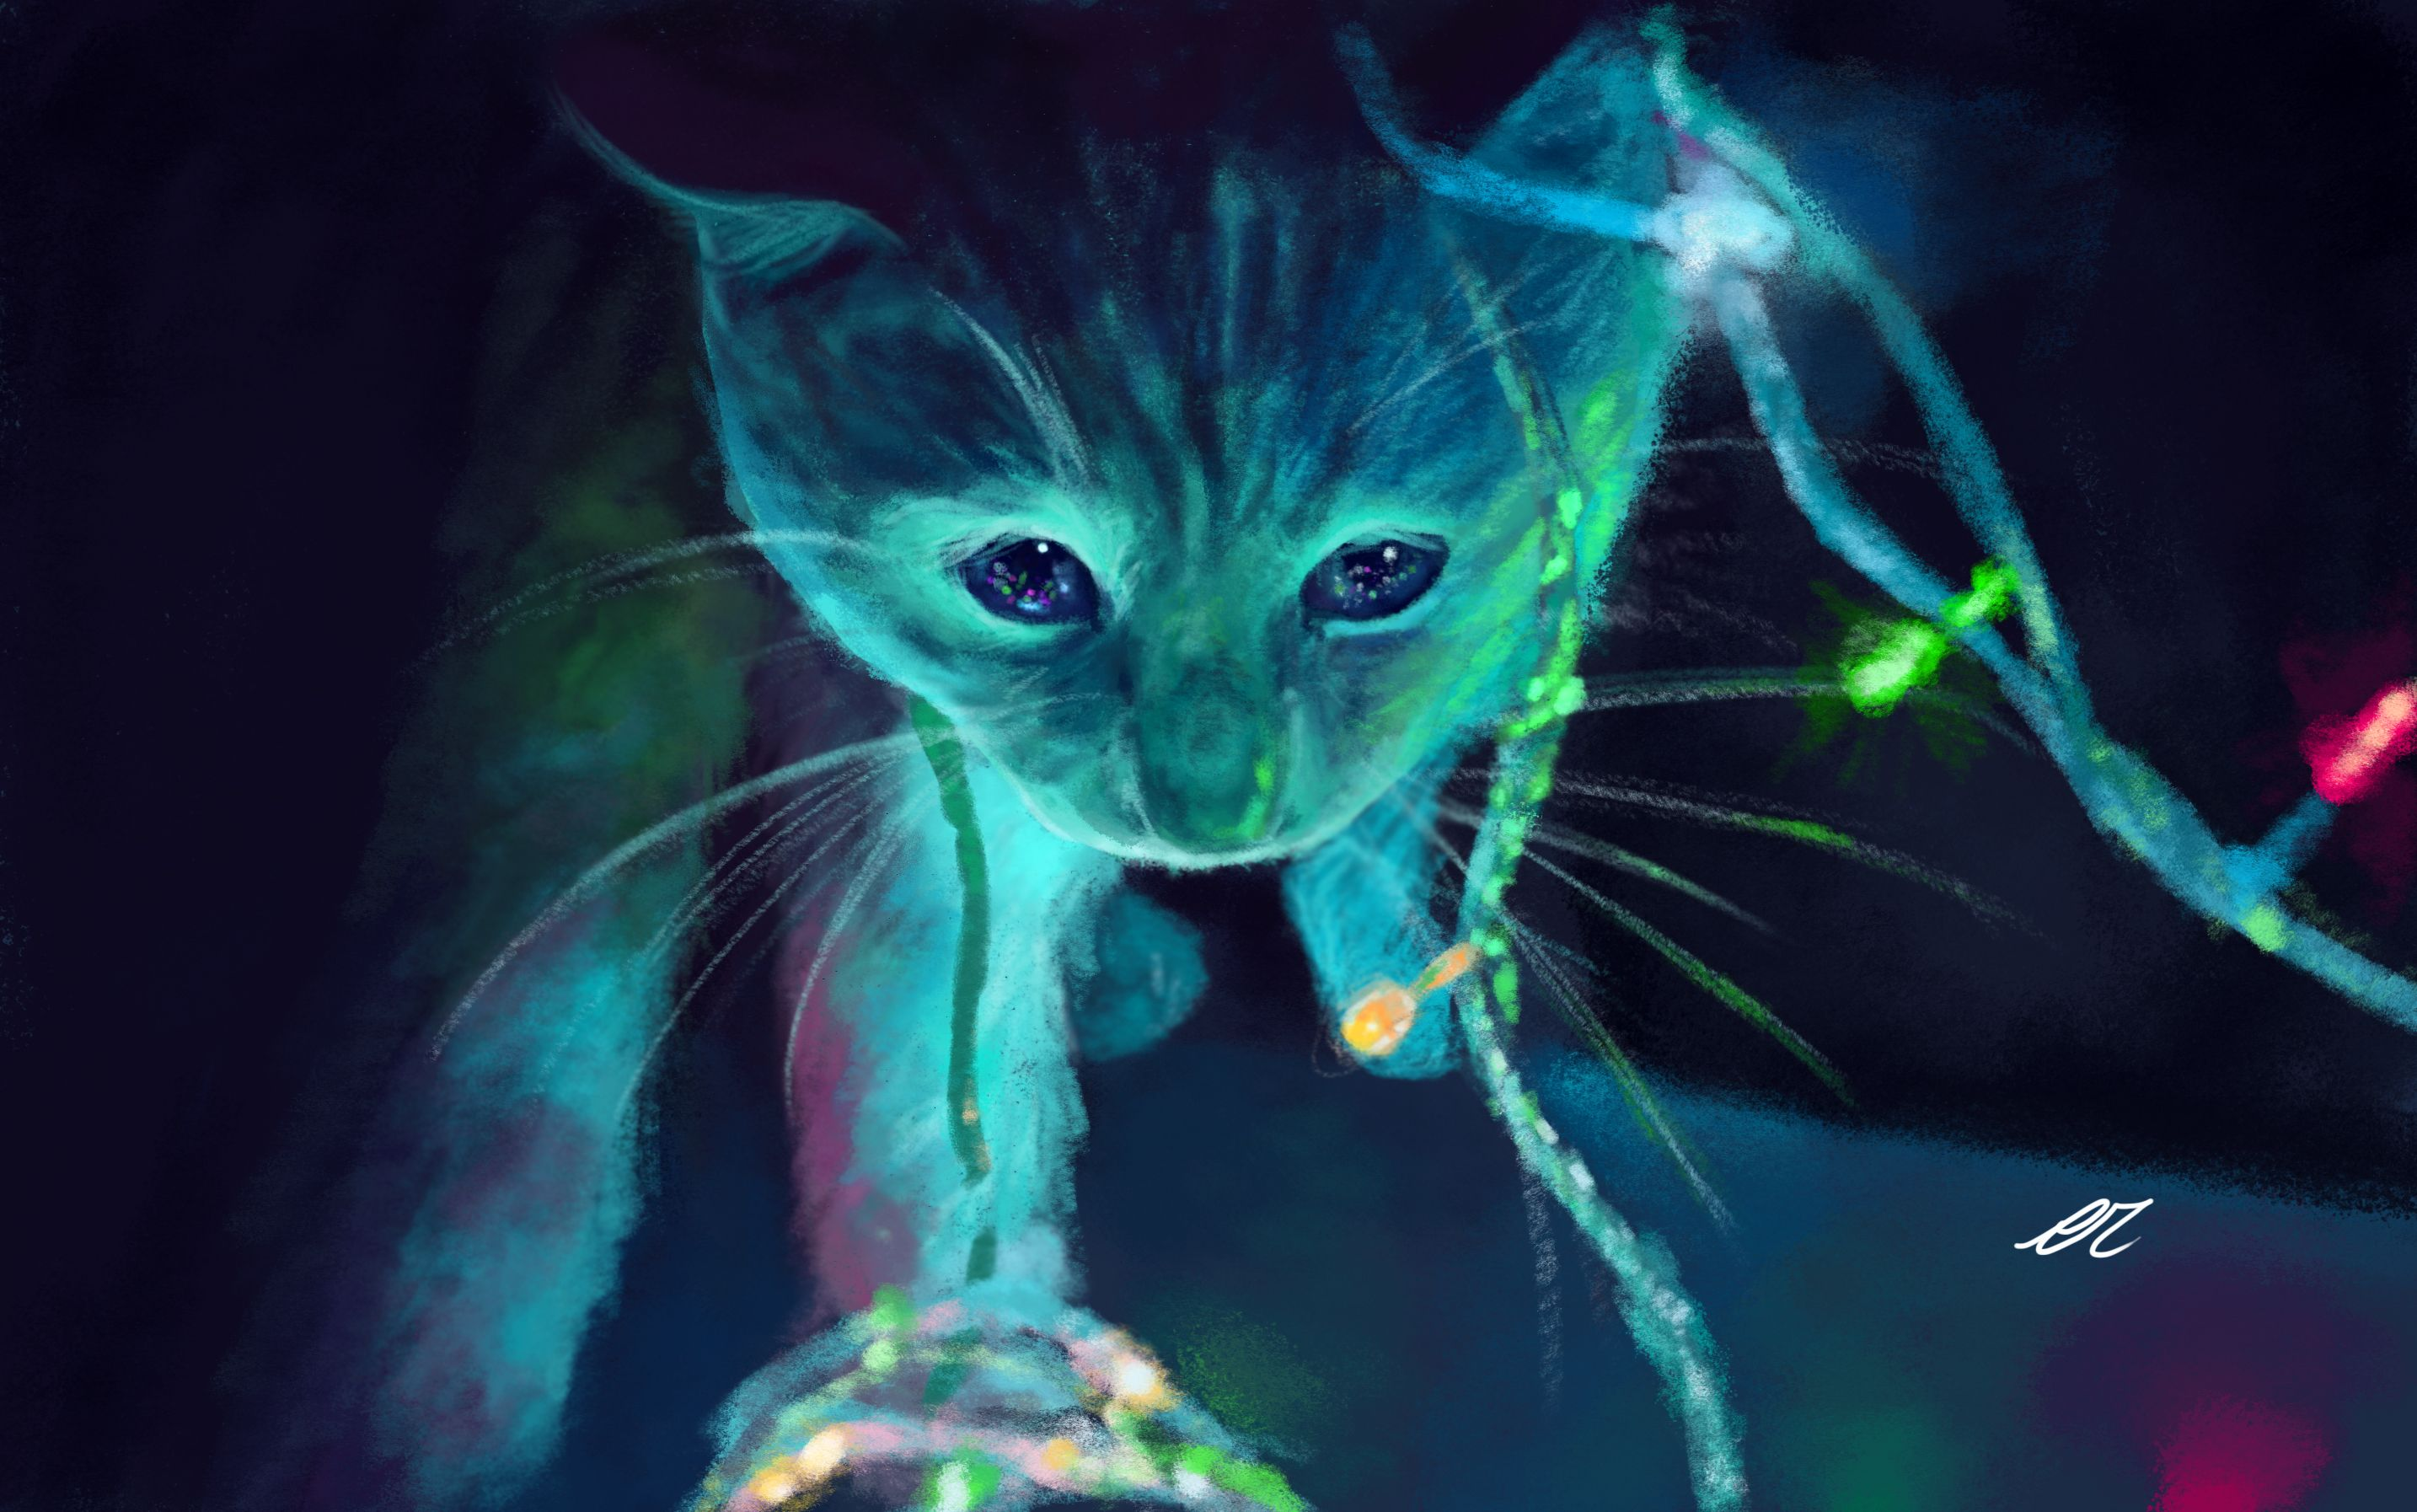 Neon Cat Wallpapers Top Free Neon Cat Backgrounds Wallpaperaccess